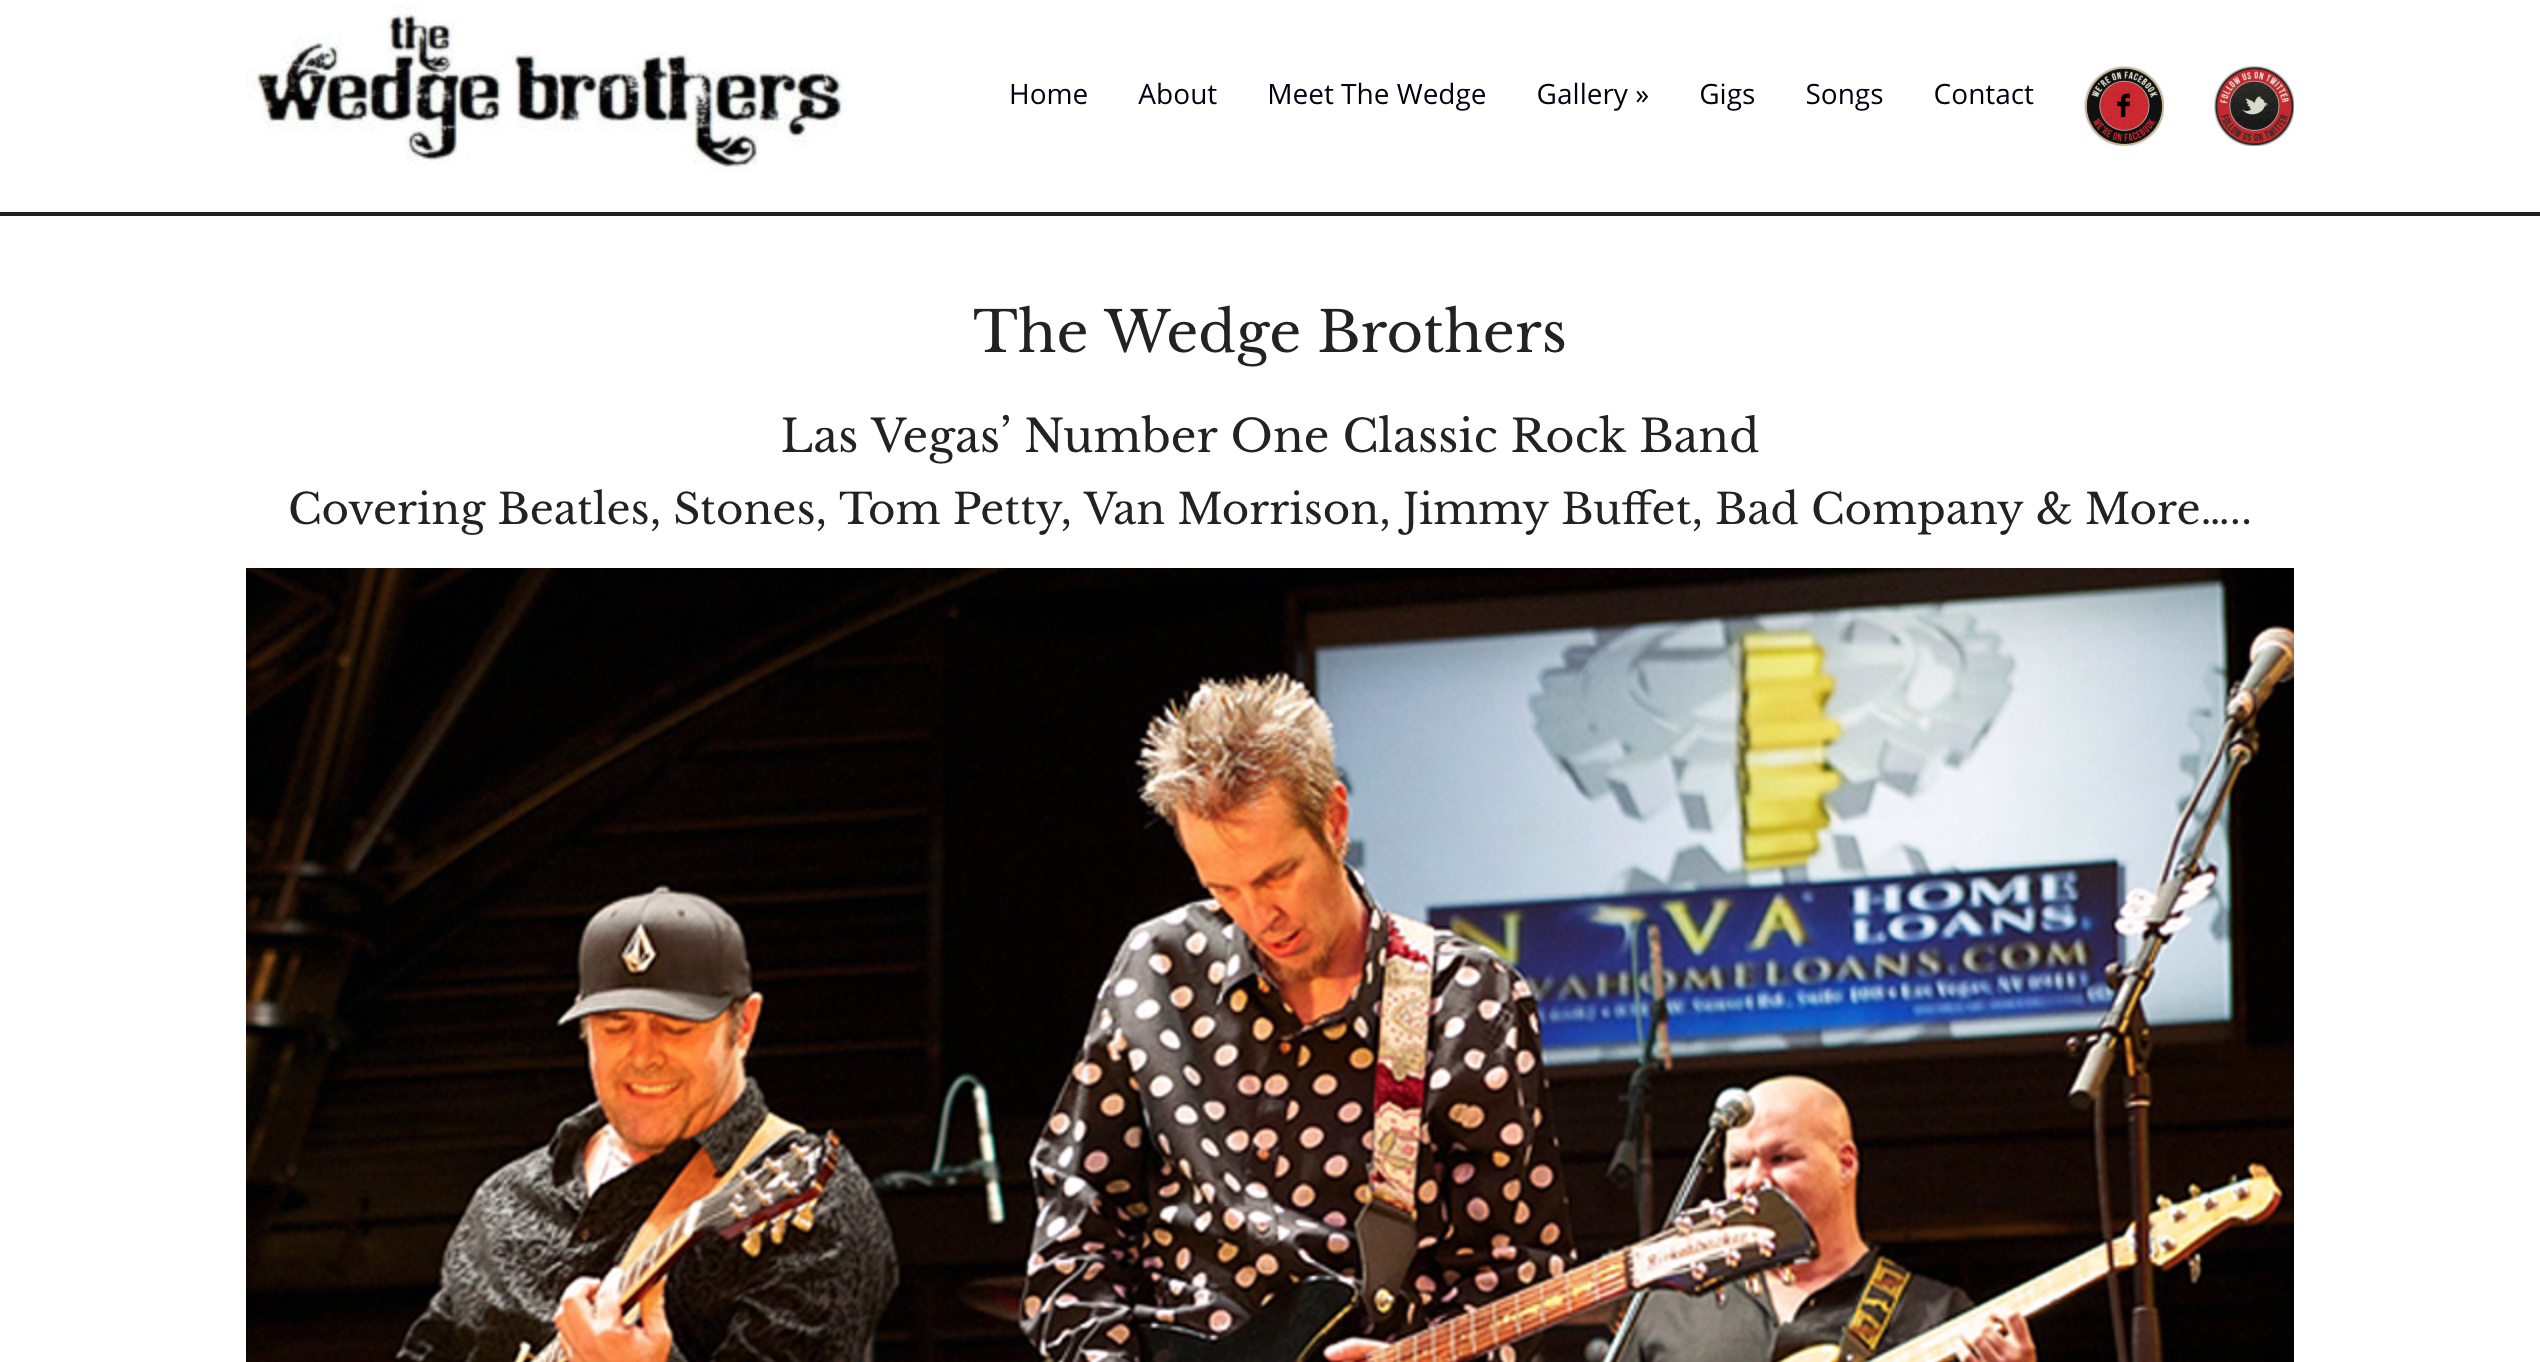 The Wedge Brothers Website Home Page